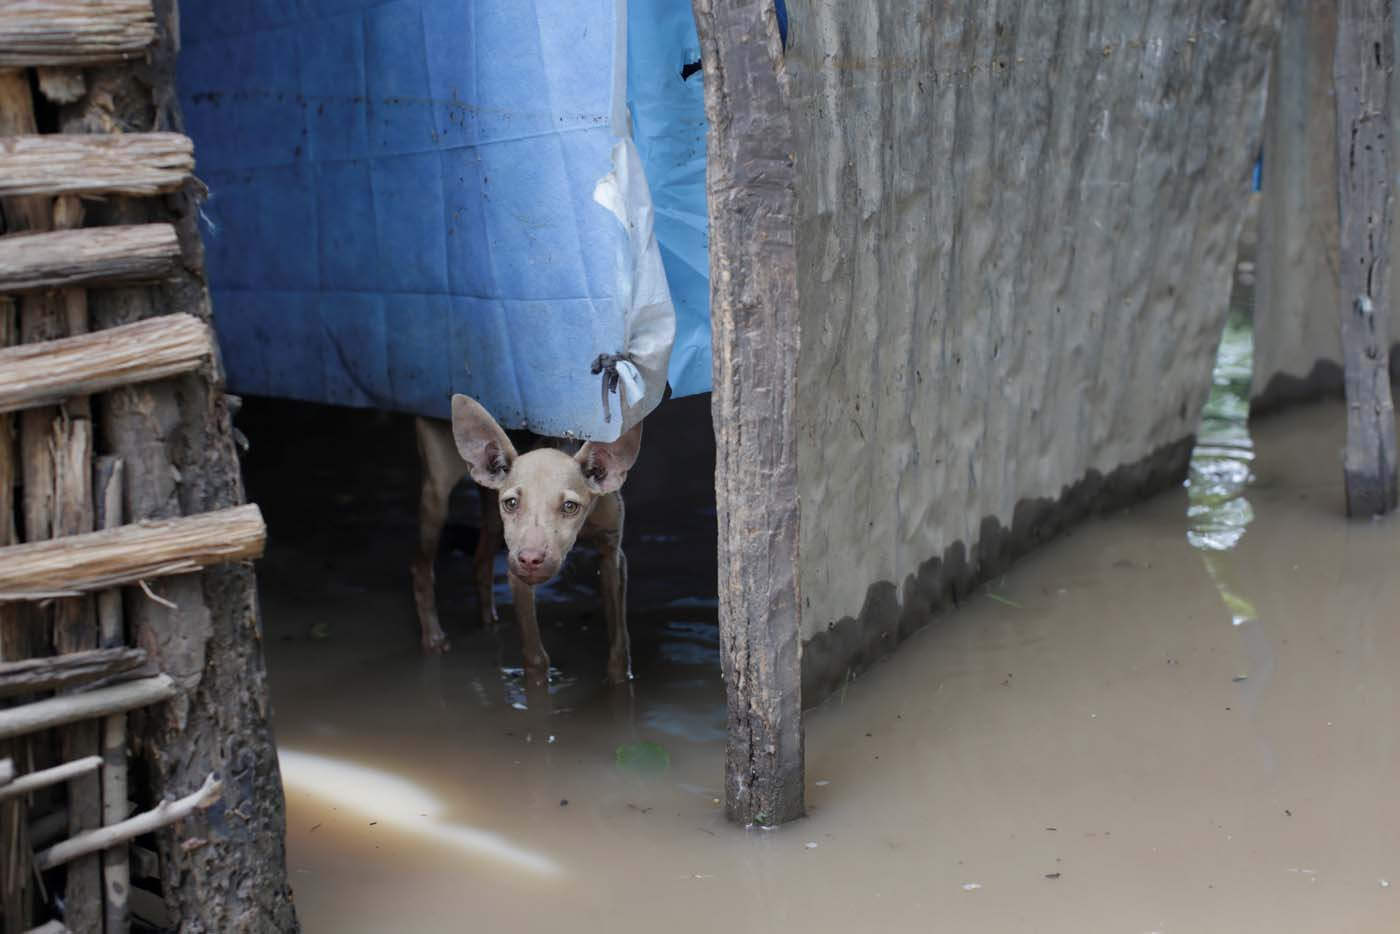 A pup stands in flood waters after hurricane Irma in Fort Liberte, Haiti September 8, 2017. REUTERS/Andres Martinez Casares